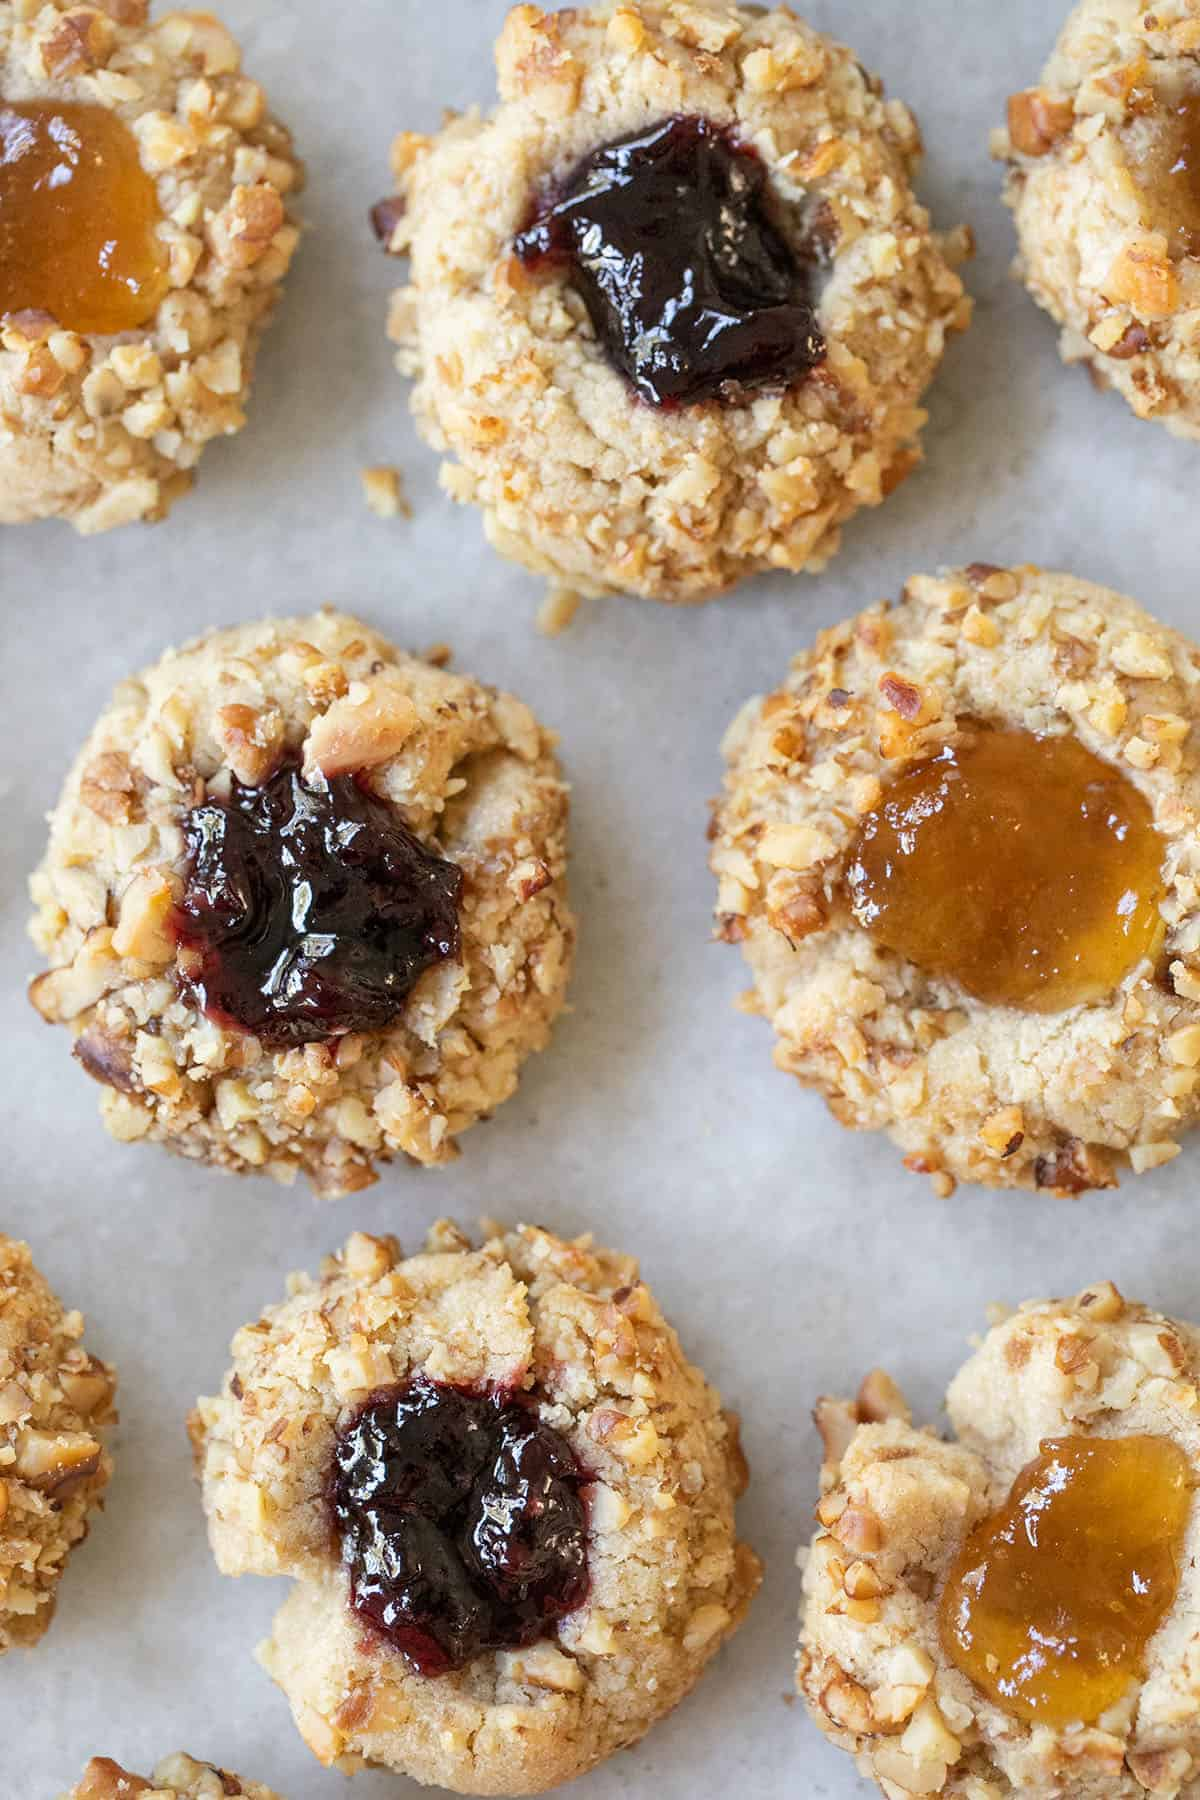 jam Thumbprint cookies with rolled walnuts and filled with jam.